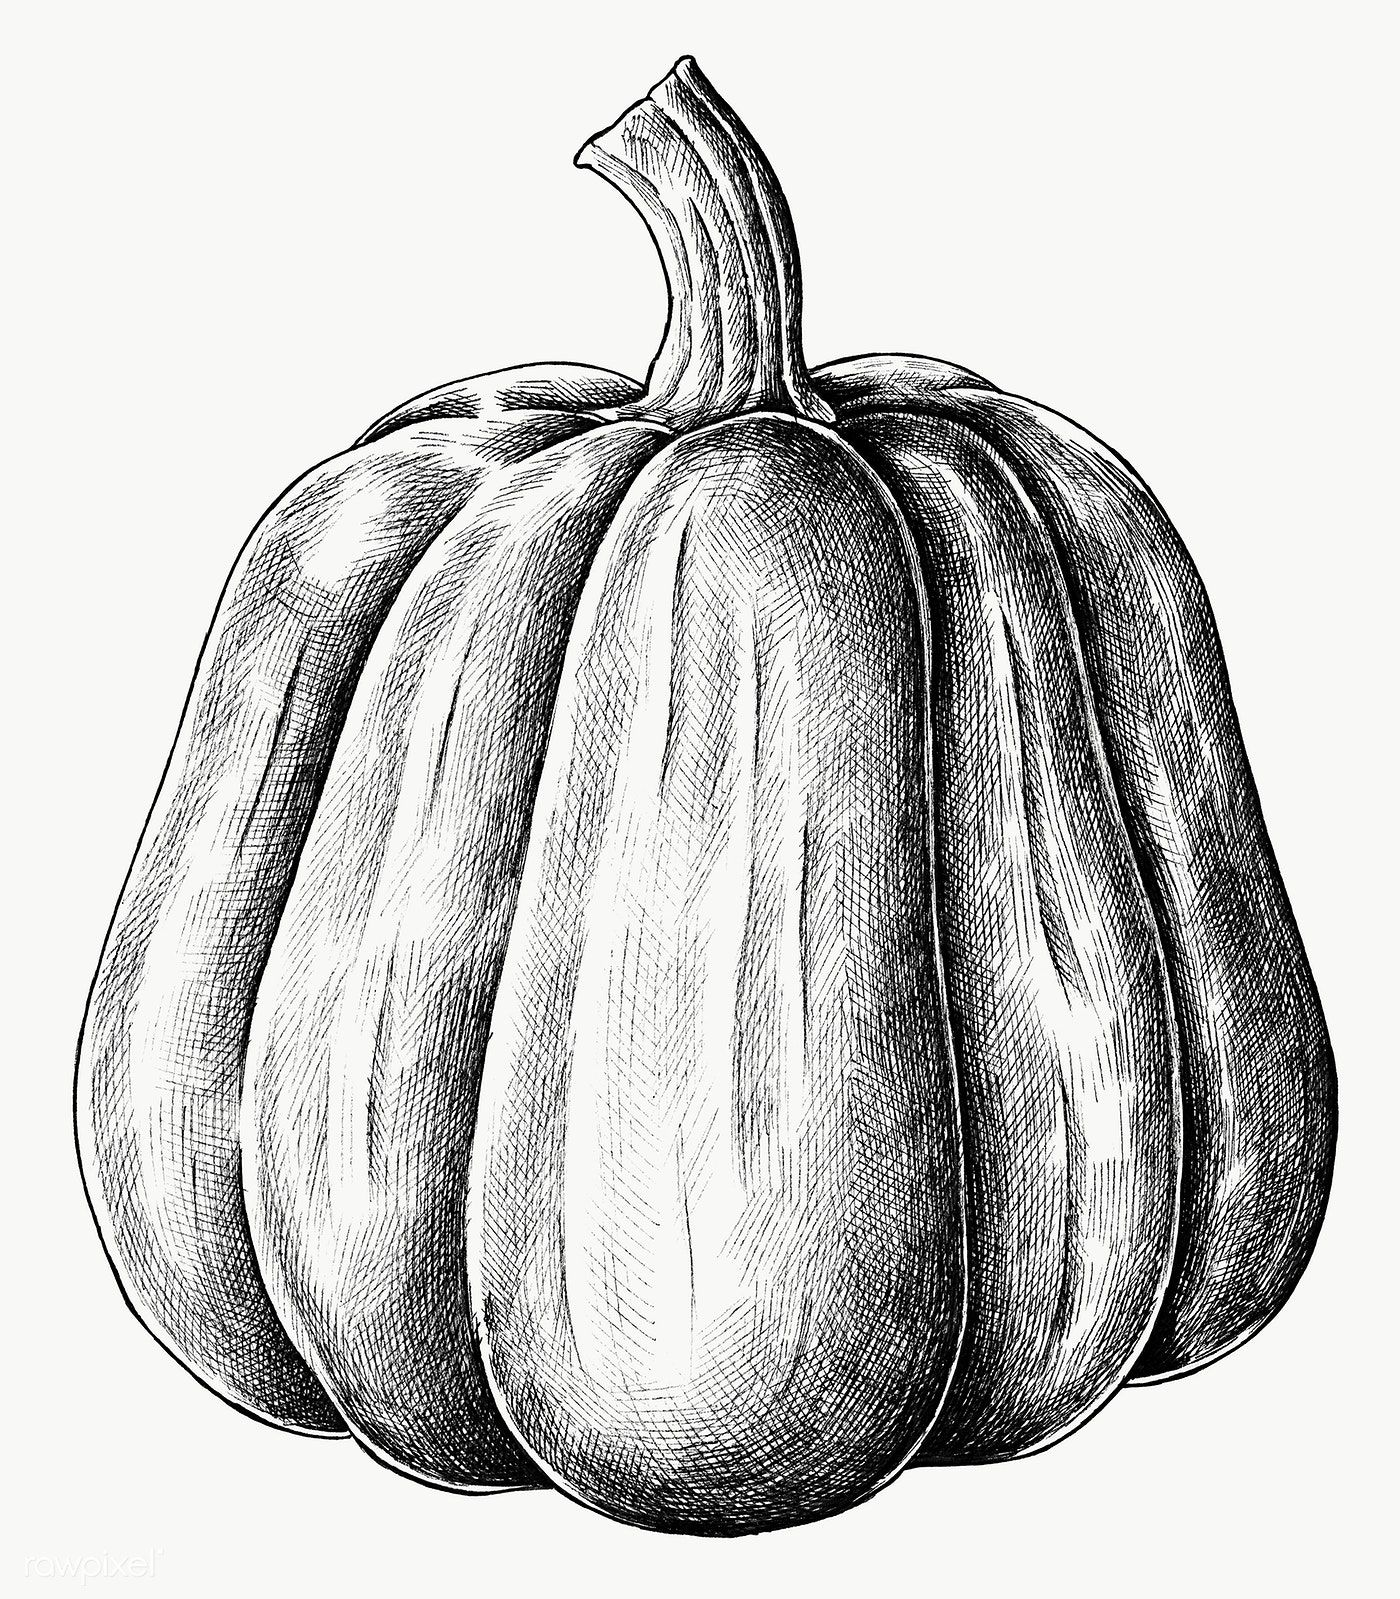 Hand Drawn Fresh Pumpkin In Black And White Transparent Png Free Image By Rawpixel Com How To Draw Hands Pumpkin Vector Pumpkin Illustration